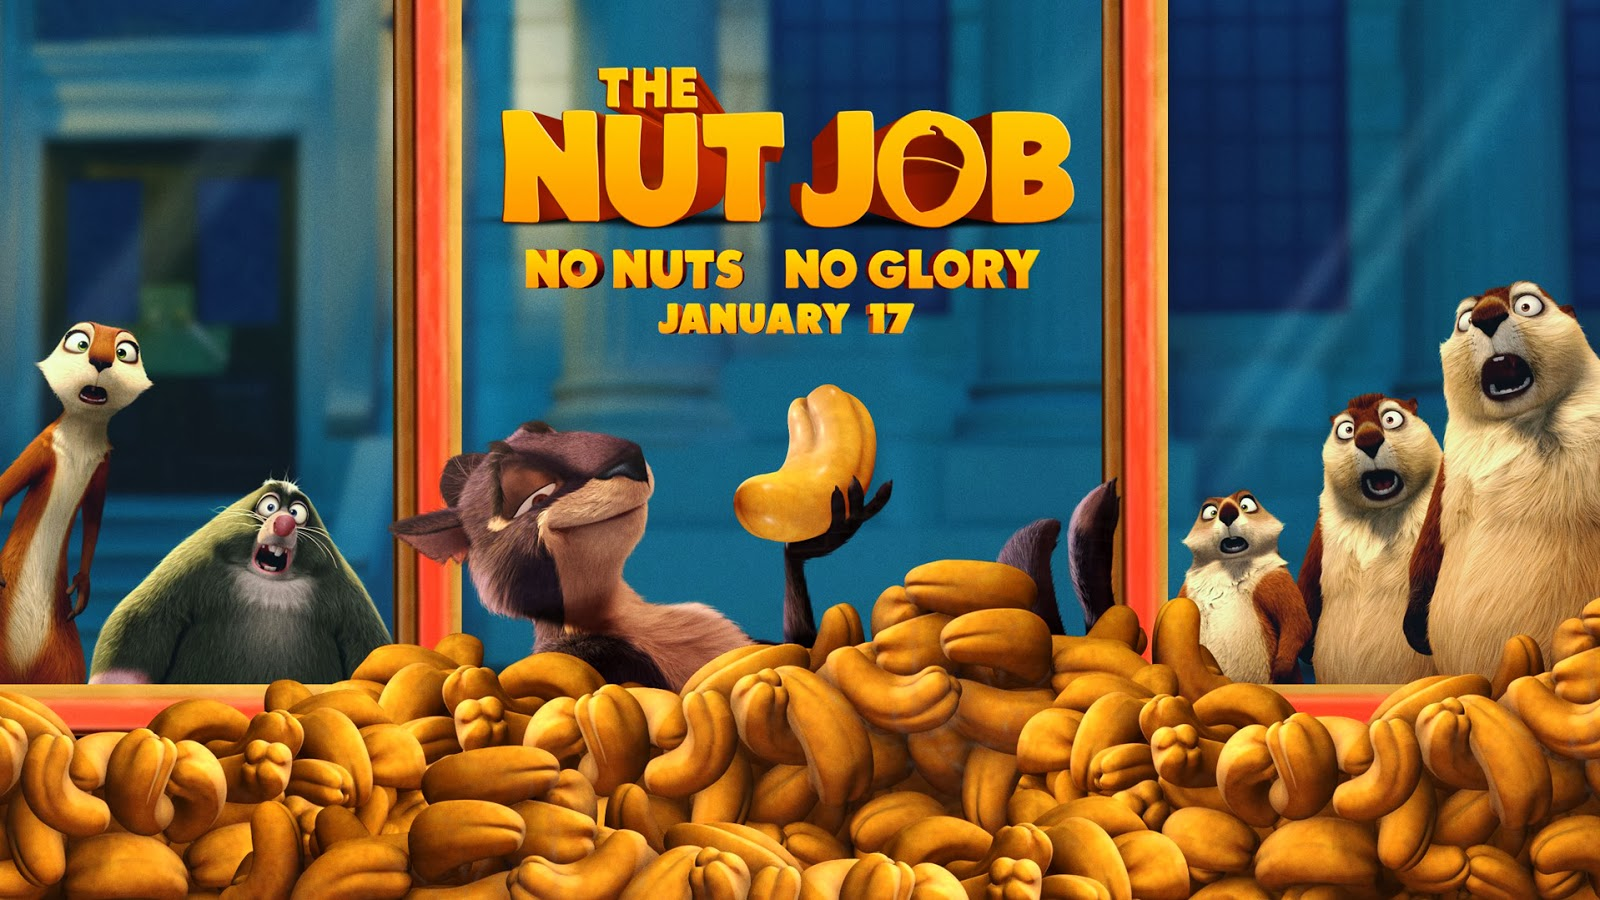 The Nut Job Animation Movie HD Wallpaper